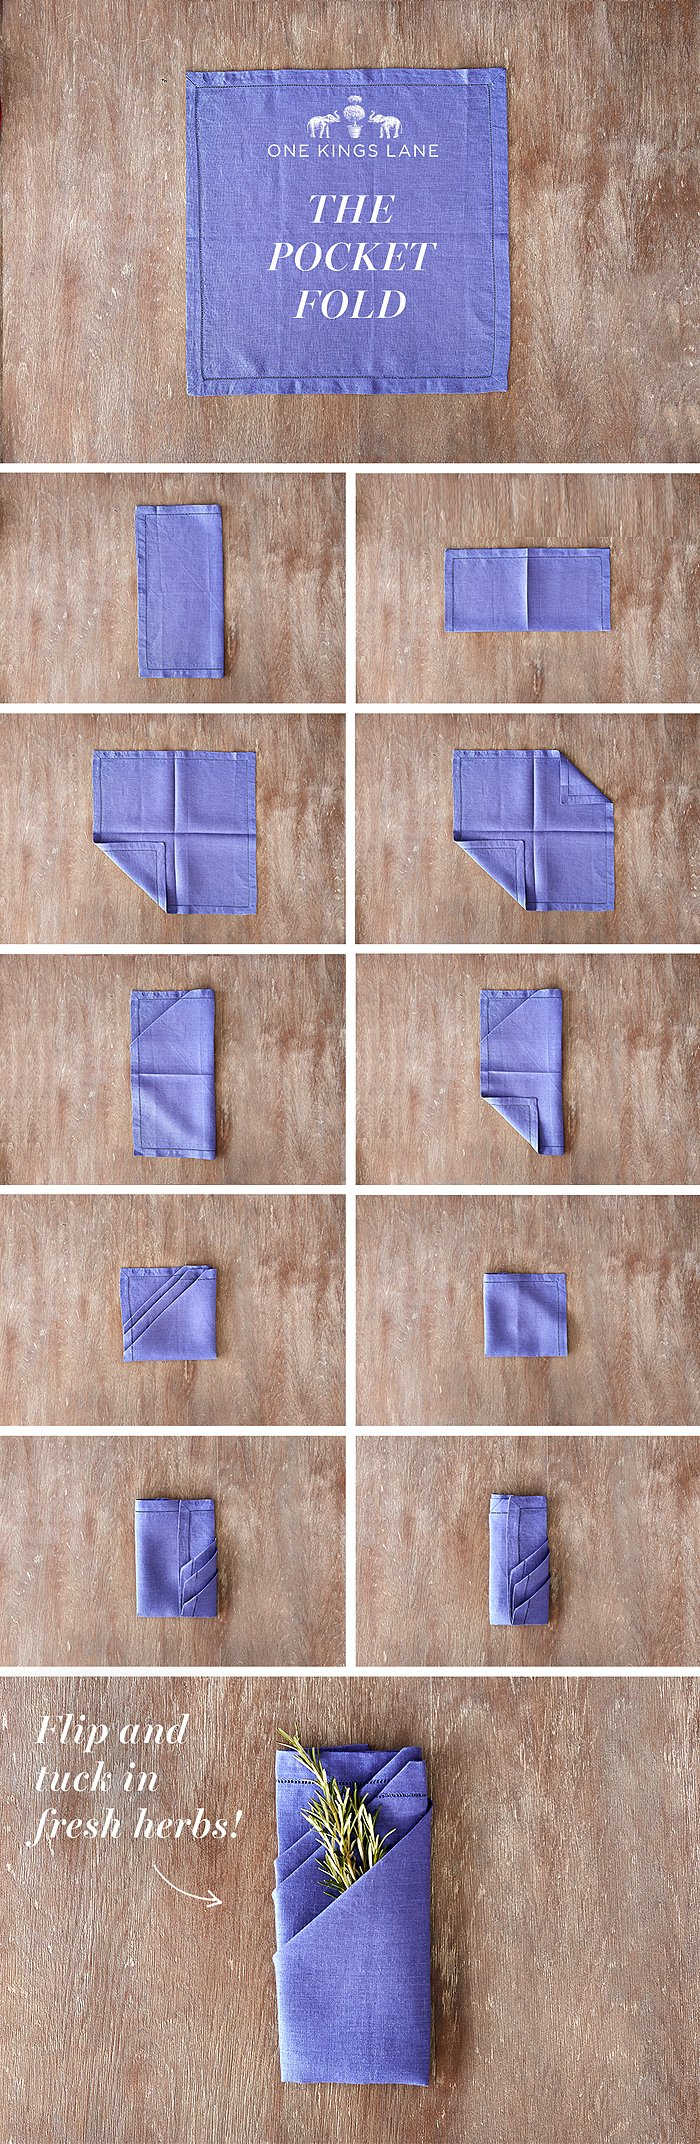 Napkin Pin_Pocket Fold